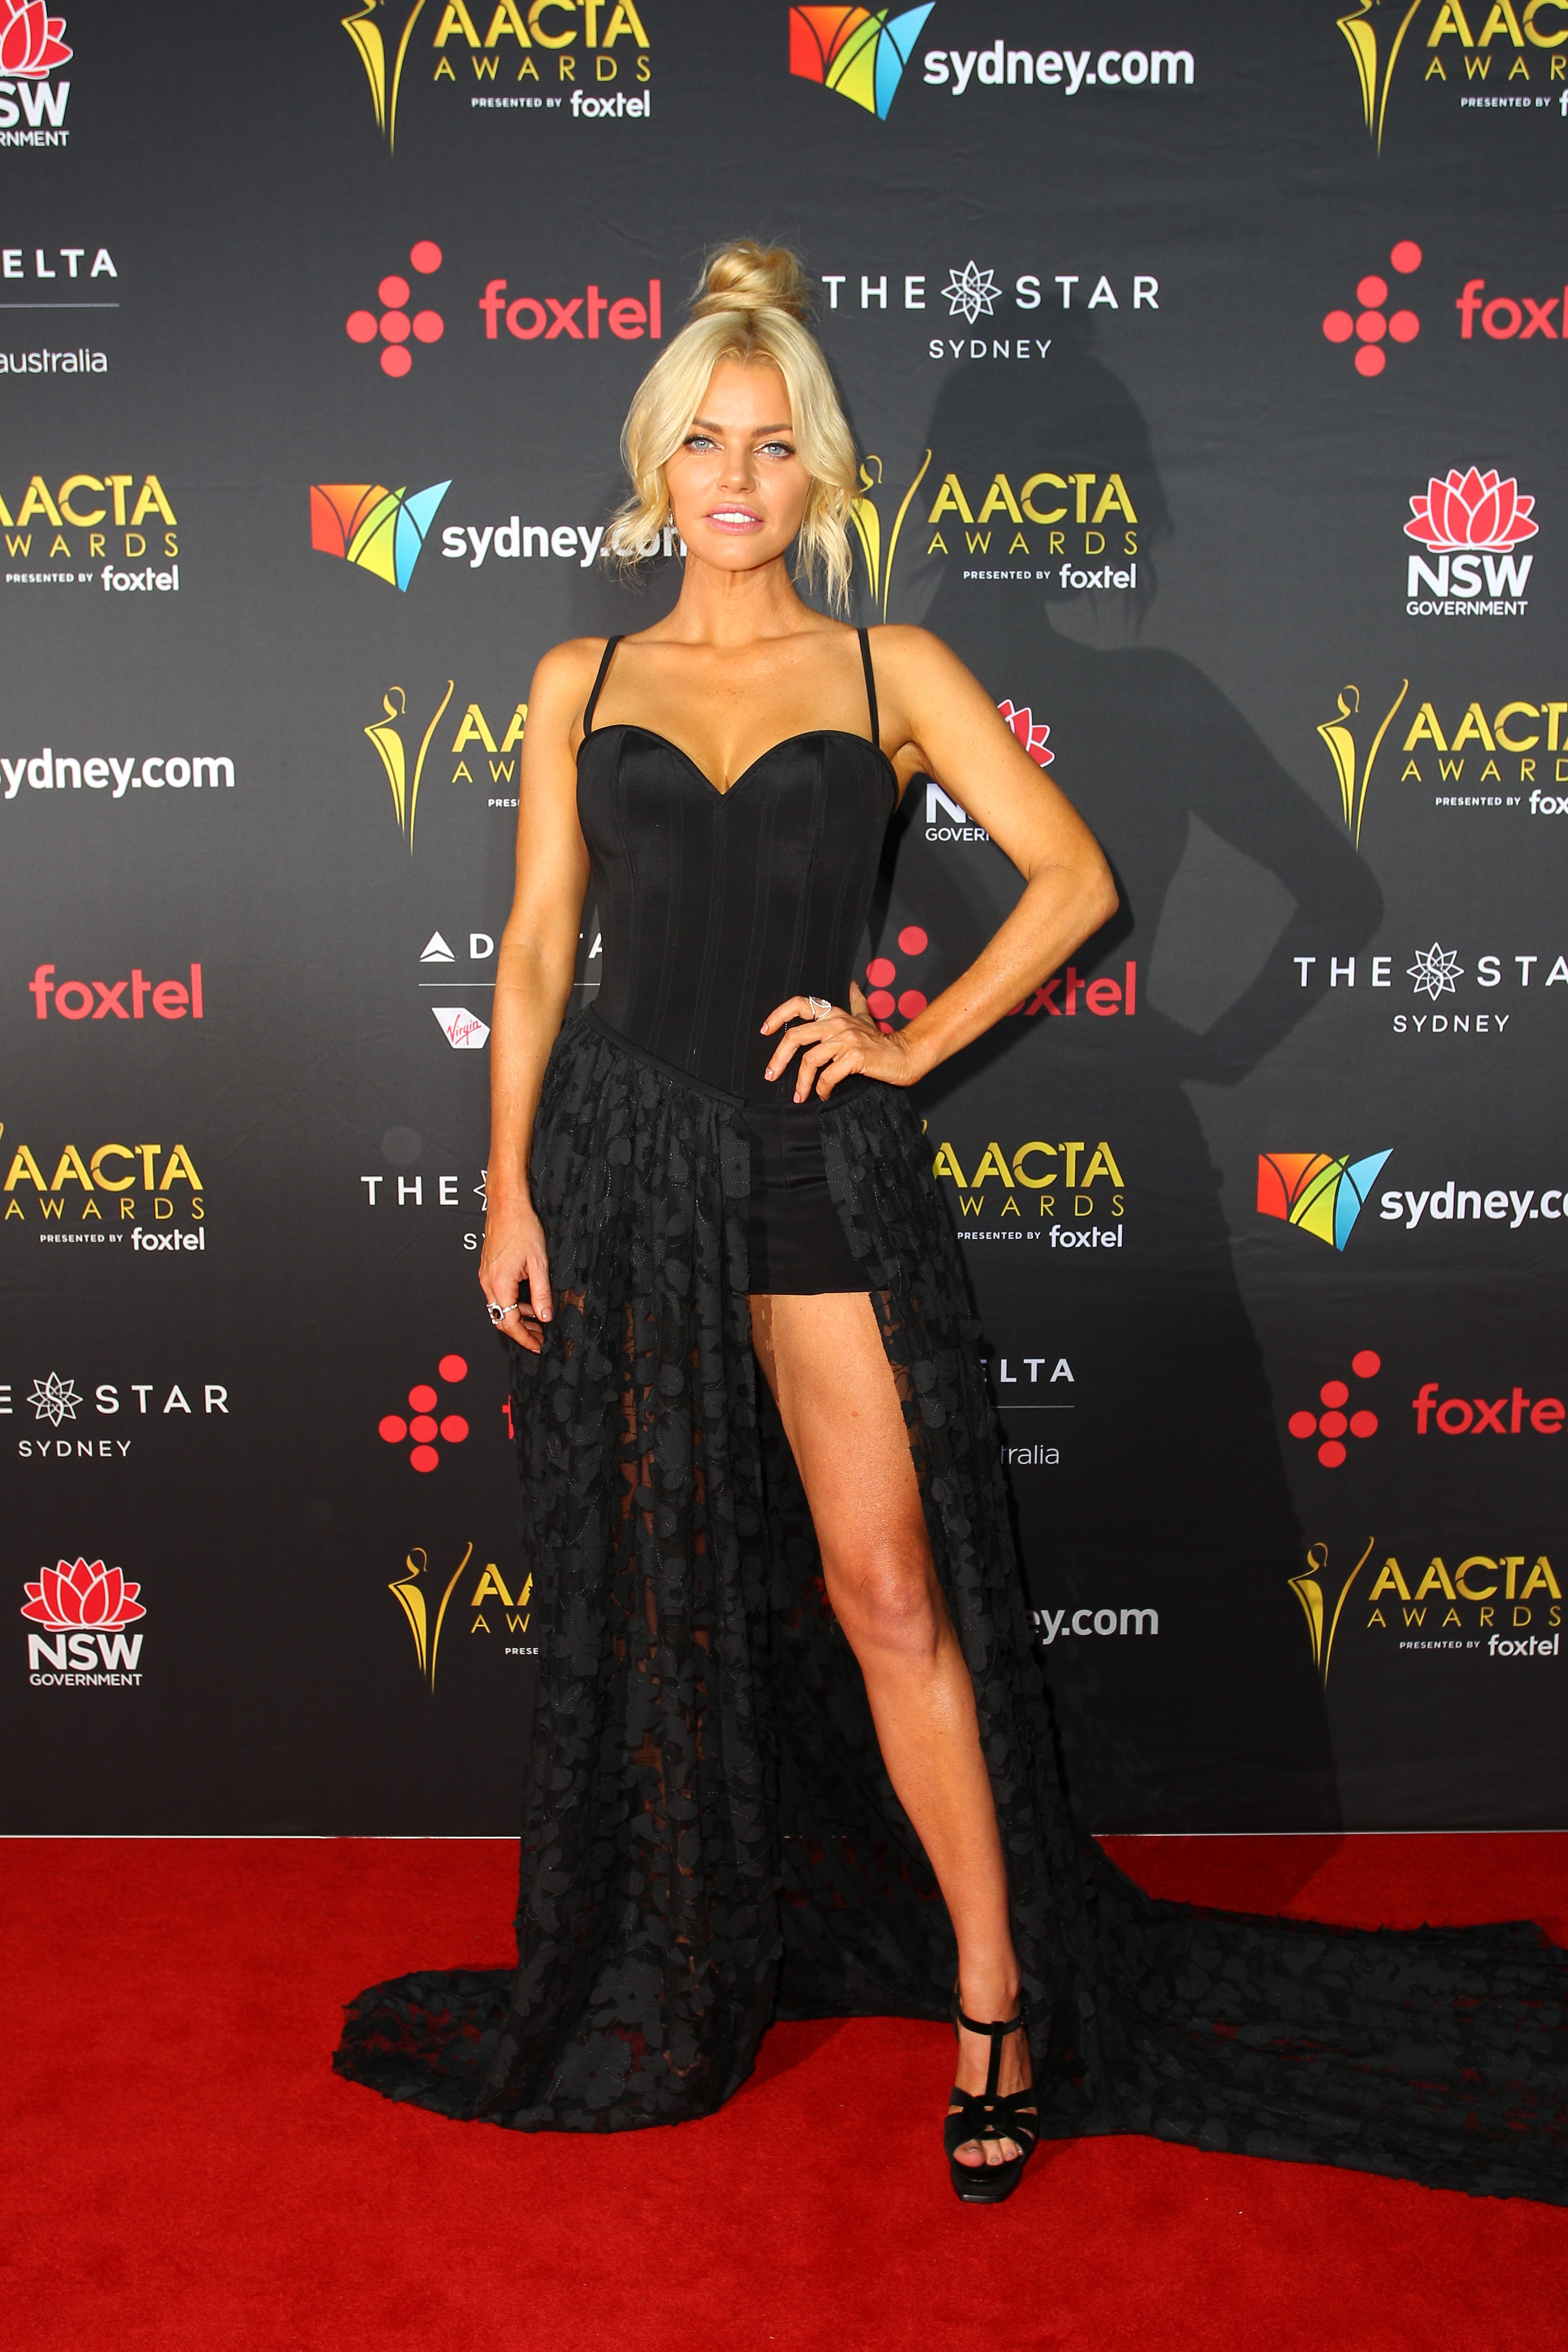 "<p>Sophie Monk tried the favourite move of Hollywood's A-list with mixed results on the red carpet for last night's AACTA Awards.</p> <p>The gown by South Yarra dressmakers Oglia Loro Couture was vaguely reminiscent of Angelina Jolie's fabled 2012 Oscar appearance in Versace, where the leg of the former Mrs Pitt gained its own Twitter handle.</p> <p>While Monk nailed the pose, captioning her Instagram post with ""Lucky I shaved the left leg,"" the finish of the dress is not quite up there with Atelier Versace. </p> <p>Here's some inspiration from Jolie, Nicole Kidman, and Jennifers Lopez and Aniston on how to nail the paparazzi pose in style.</p>"